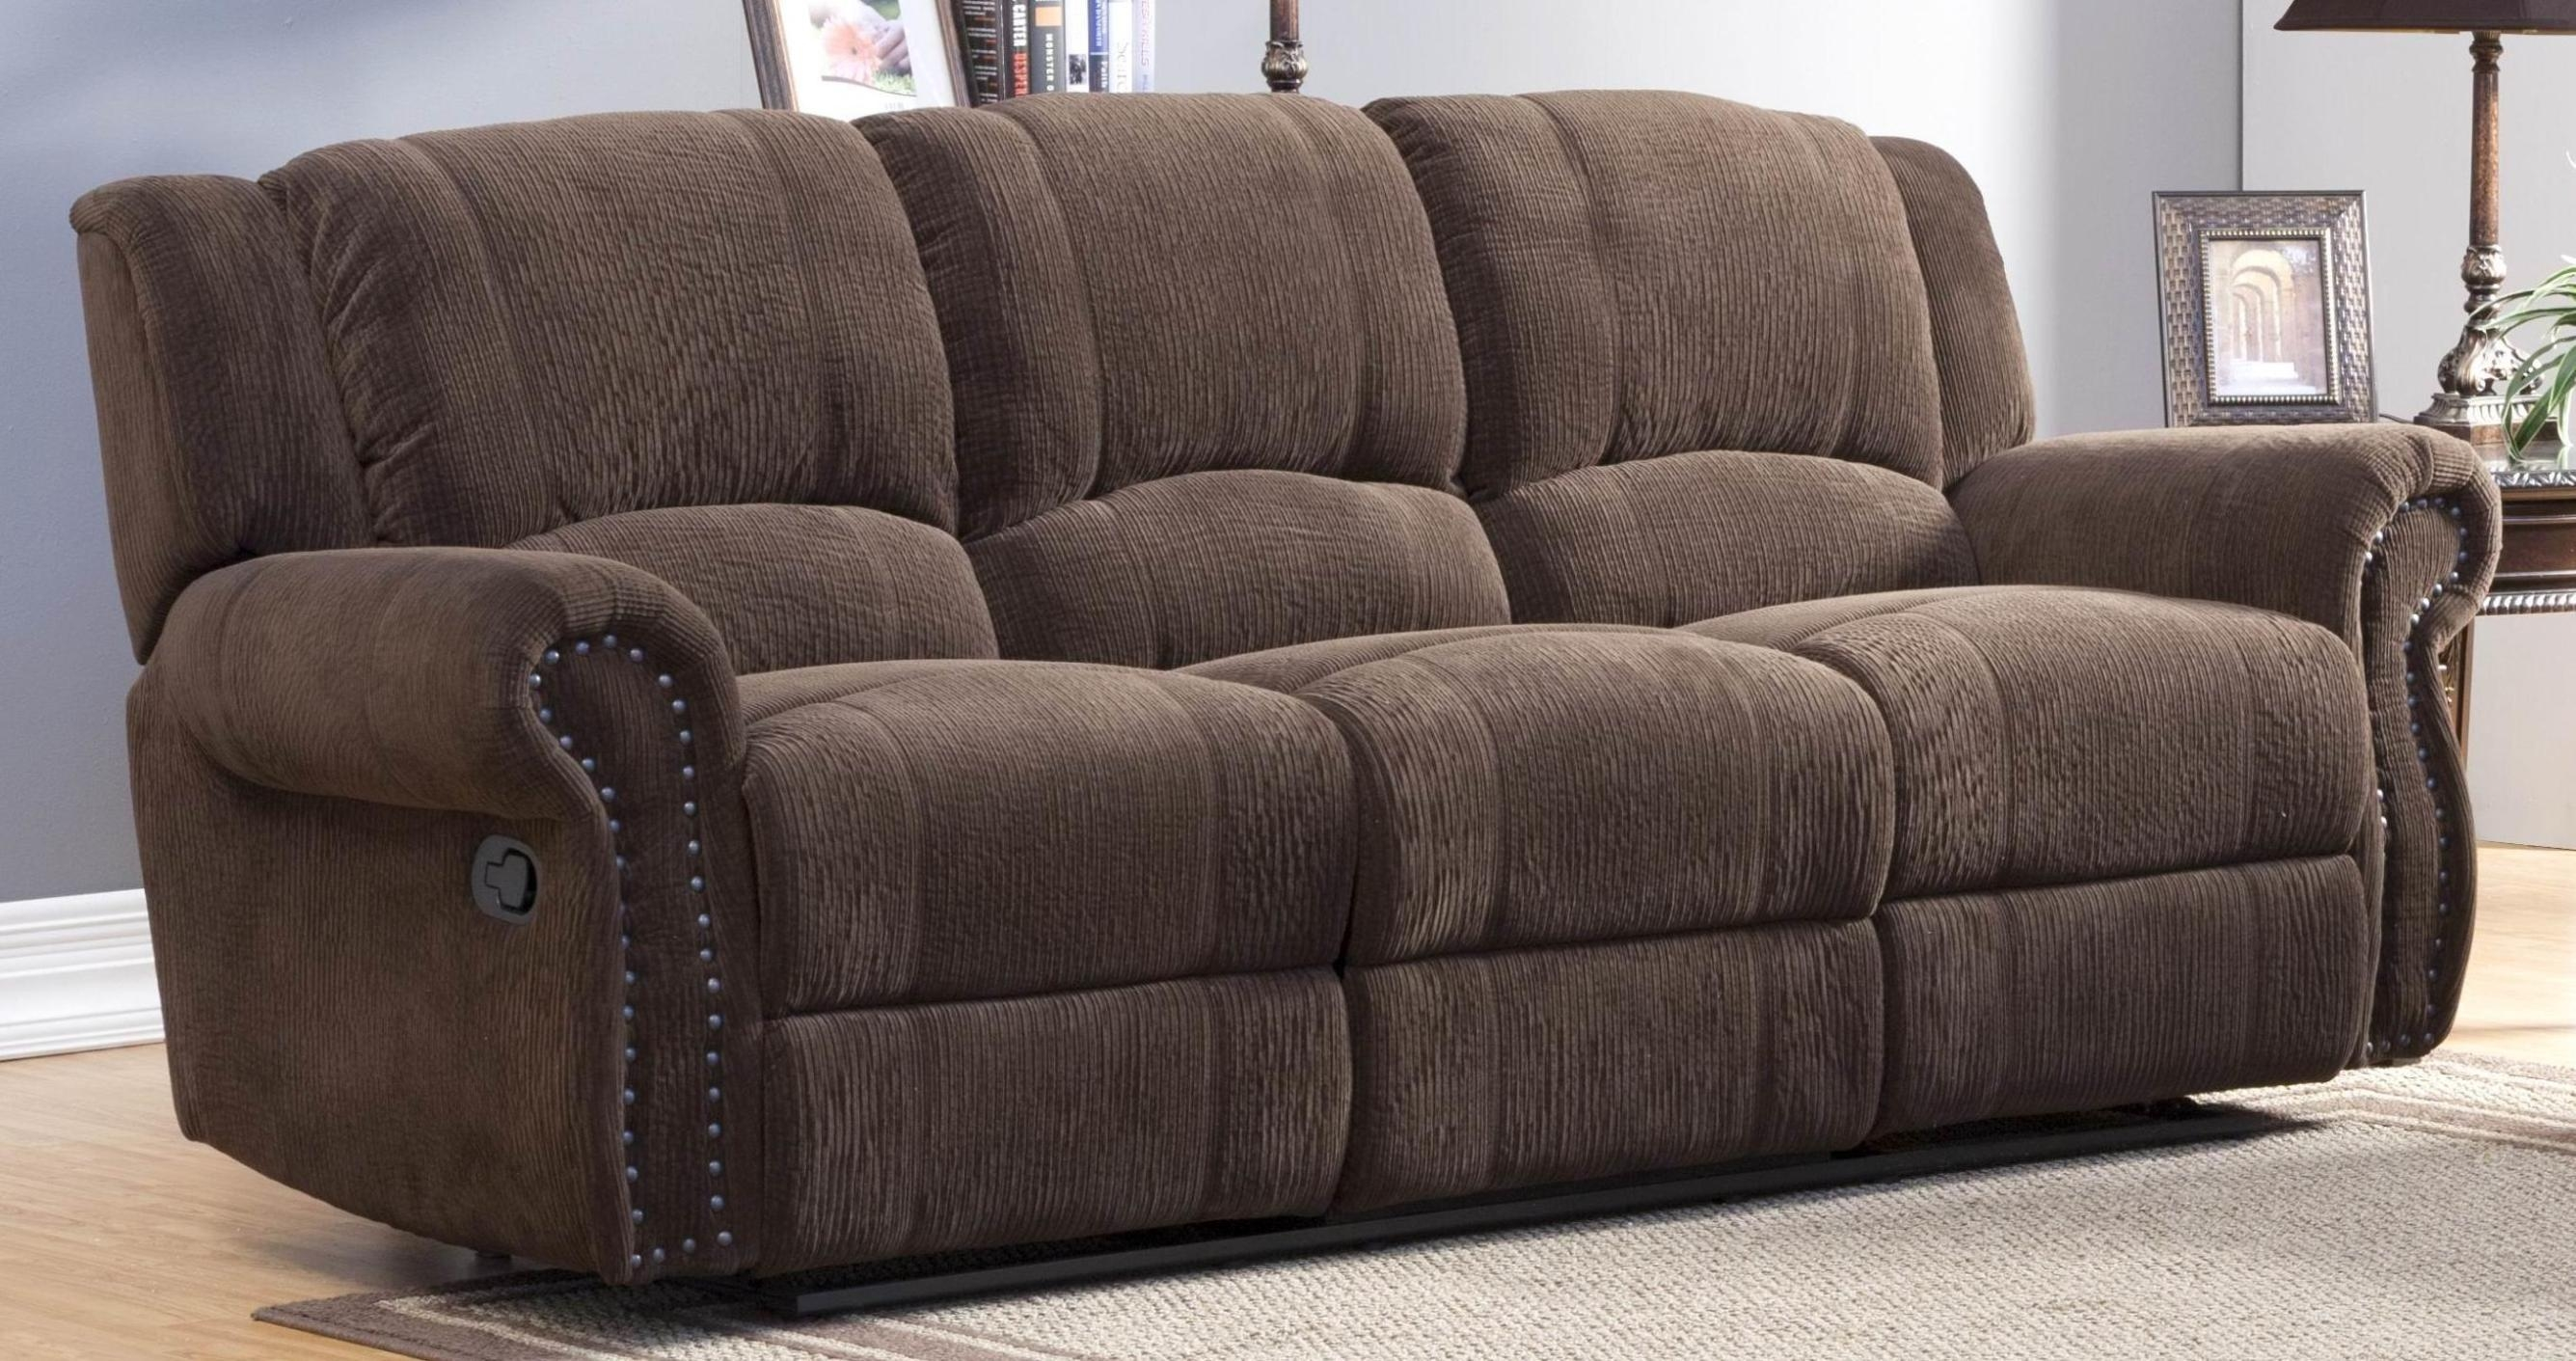 Best Slipcovers For Reclining Sectional Sofas Intended For Slipcovers For Sectional Sofas With Recliners (Image 4 of 20)